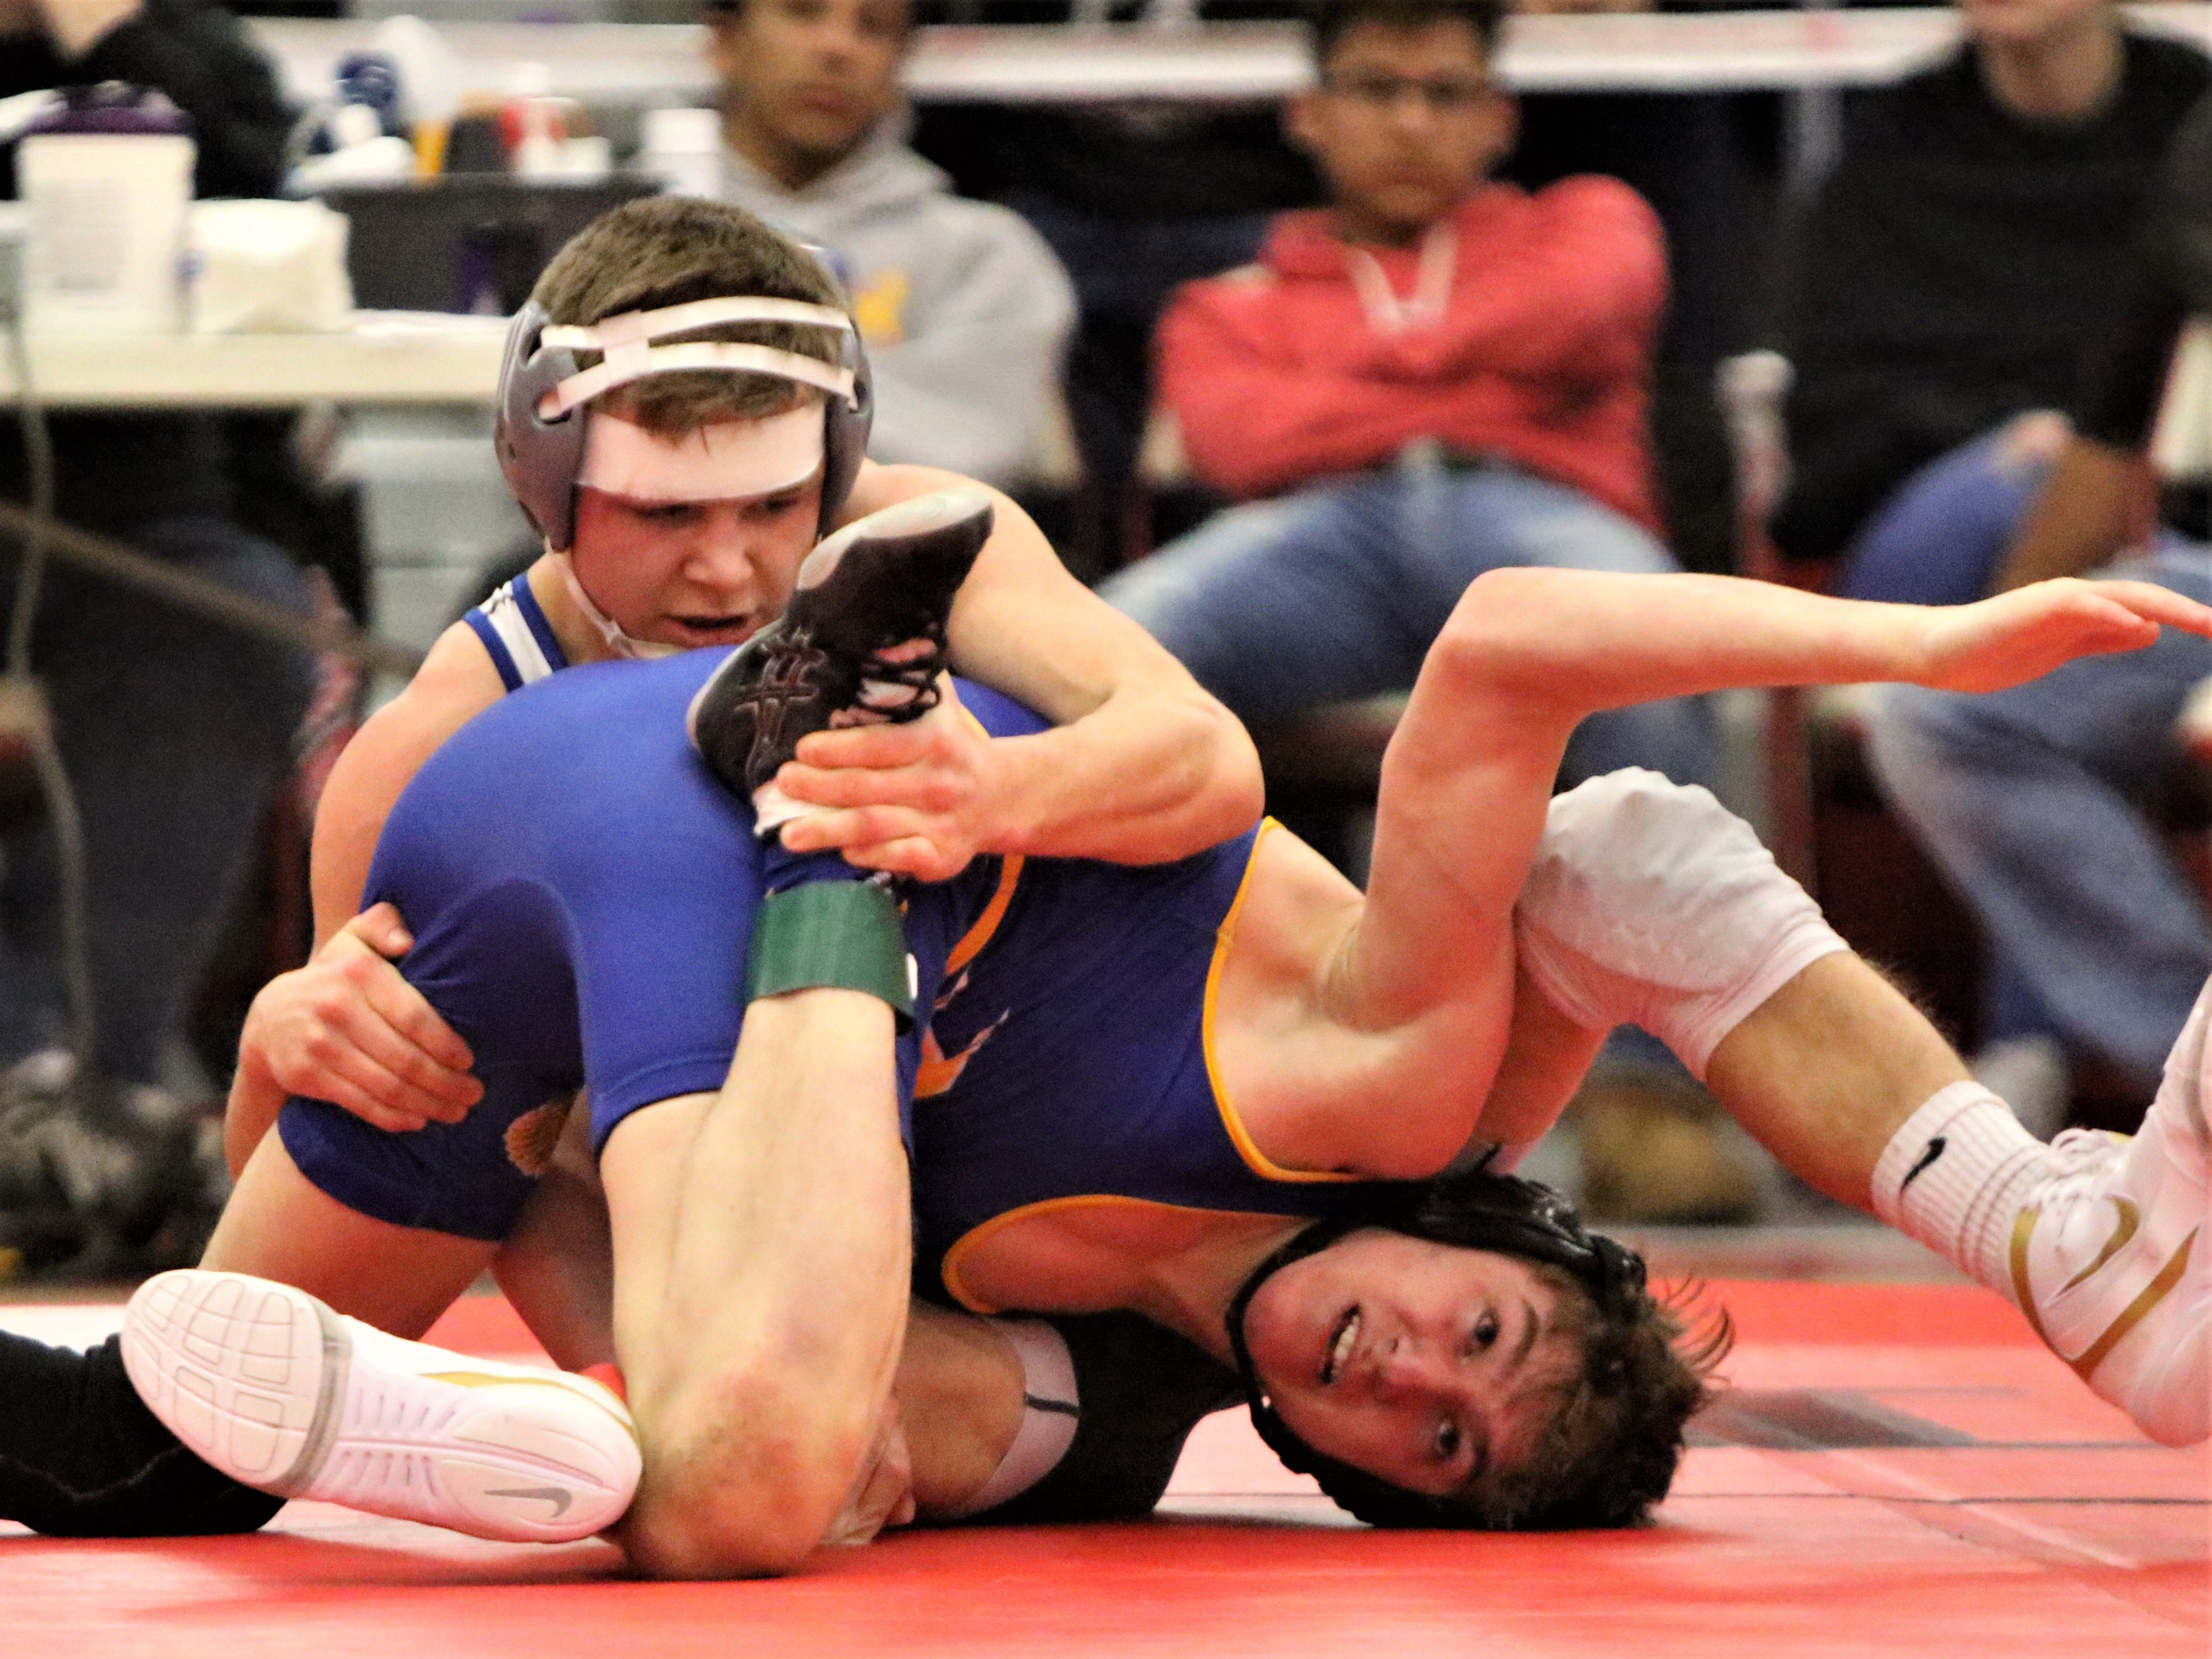 Mukwonago's CJ Grisar (back) grabs hold of Mukwonago's Josiah Lynden during a sectional title match at Racine Horlick on Feb. 16, 2019.